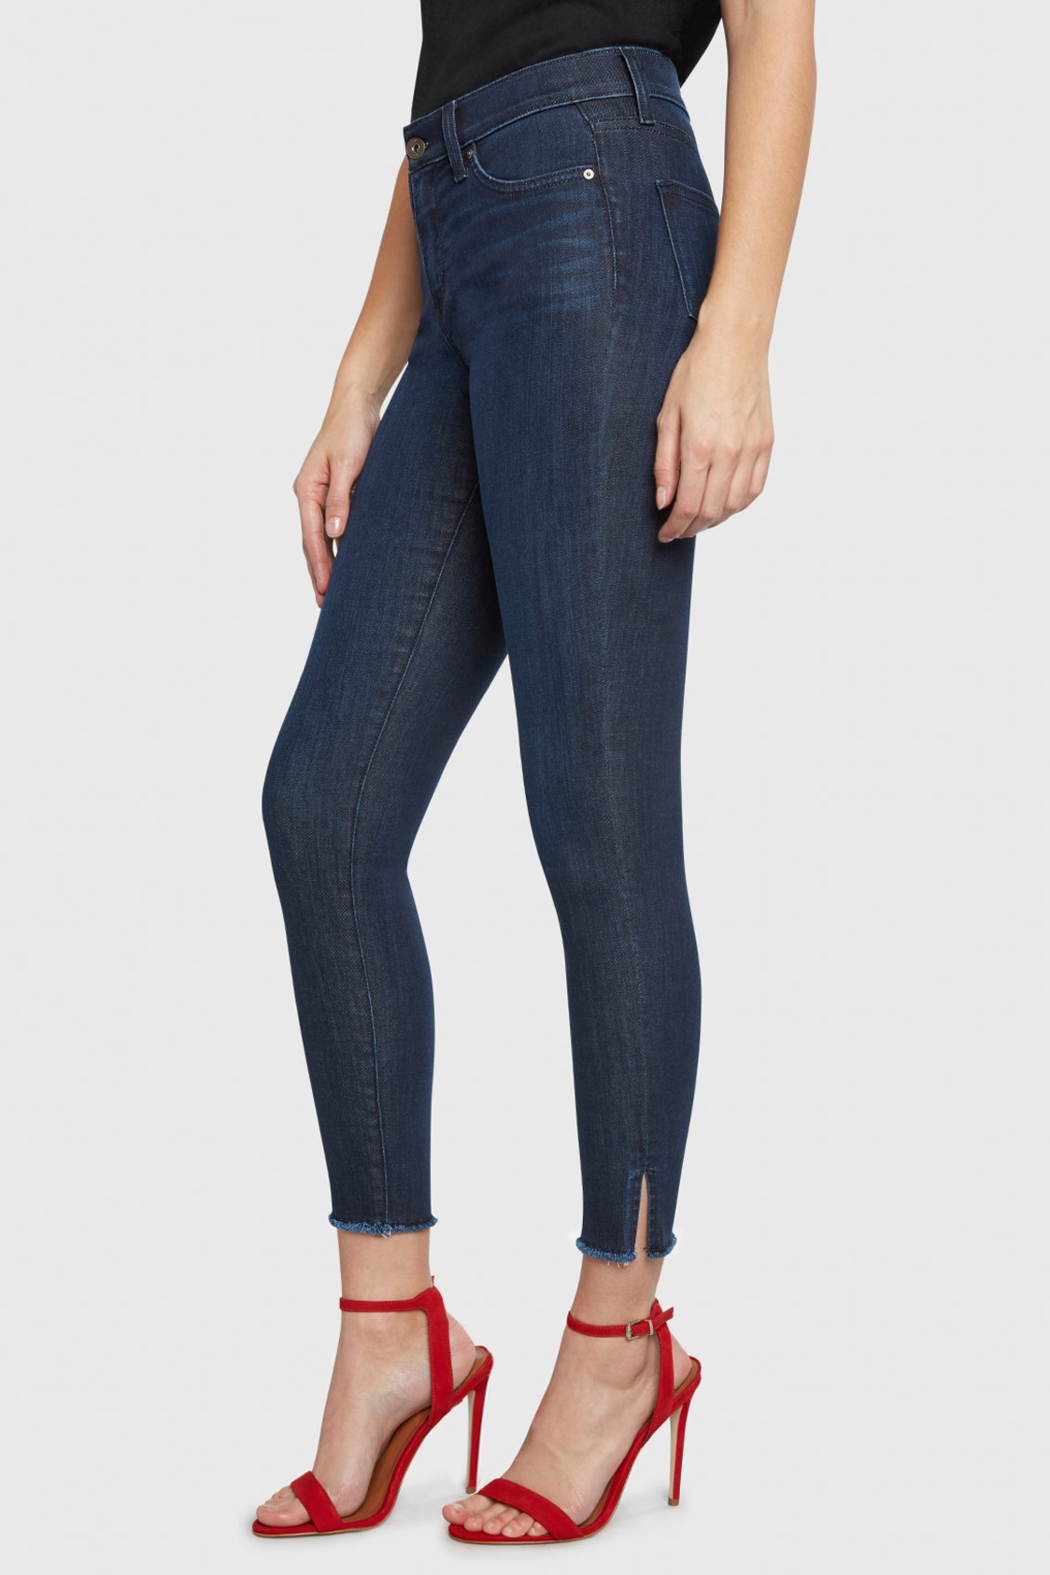 Principle Denim Principle Gem Skinny Jeans - Sweet Dreams - Back Cropped Image